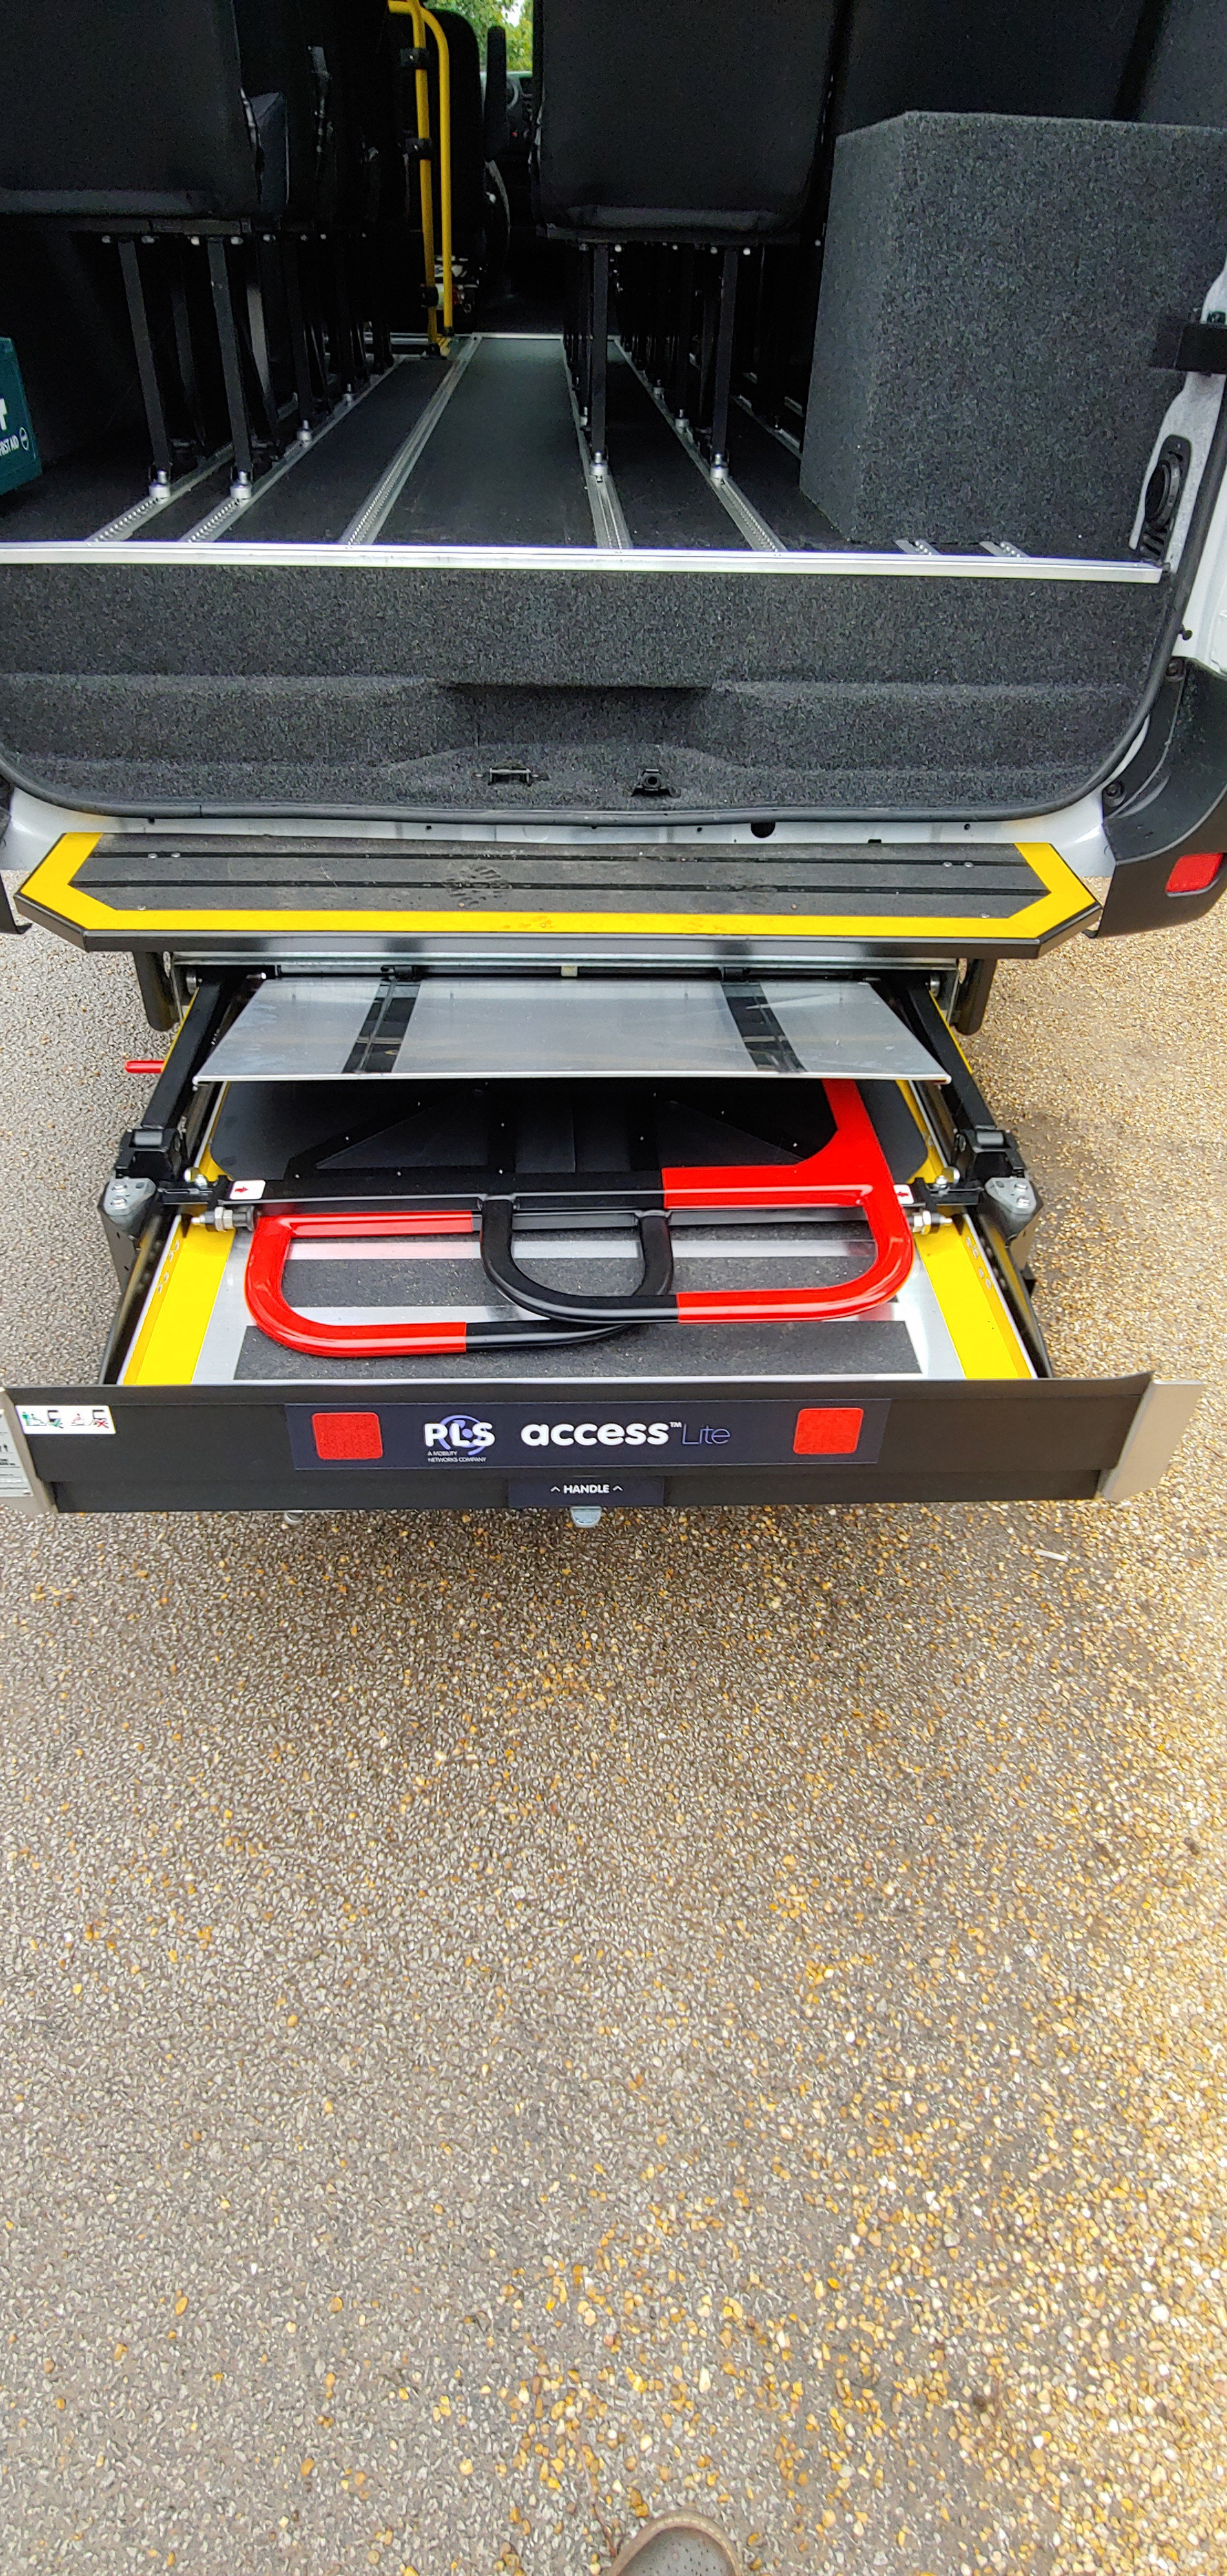 Underfloor hydraulic tail lift